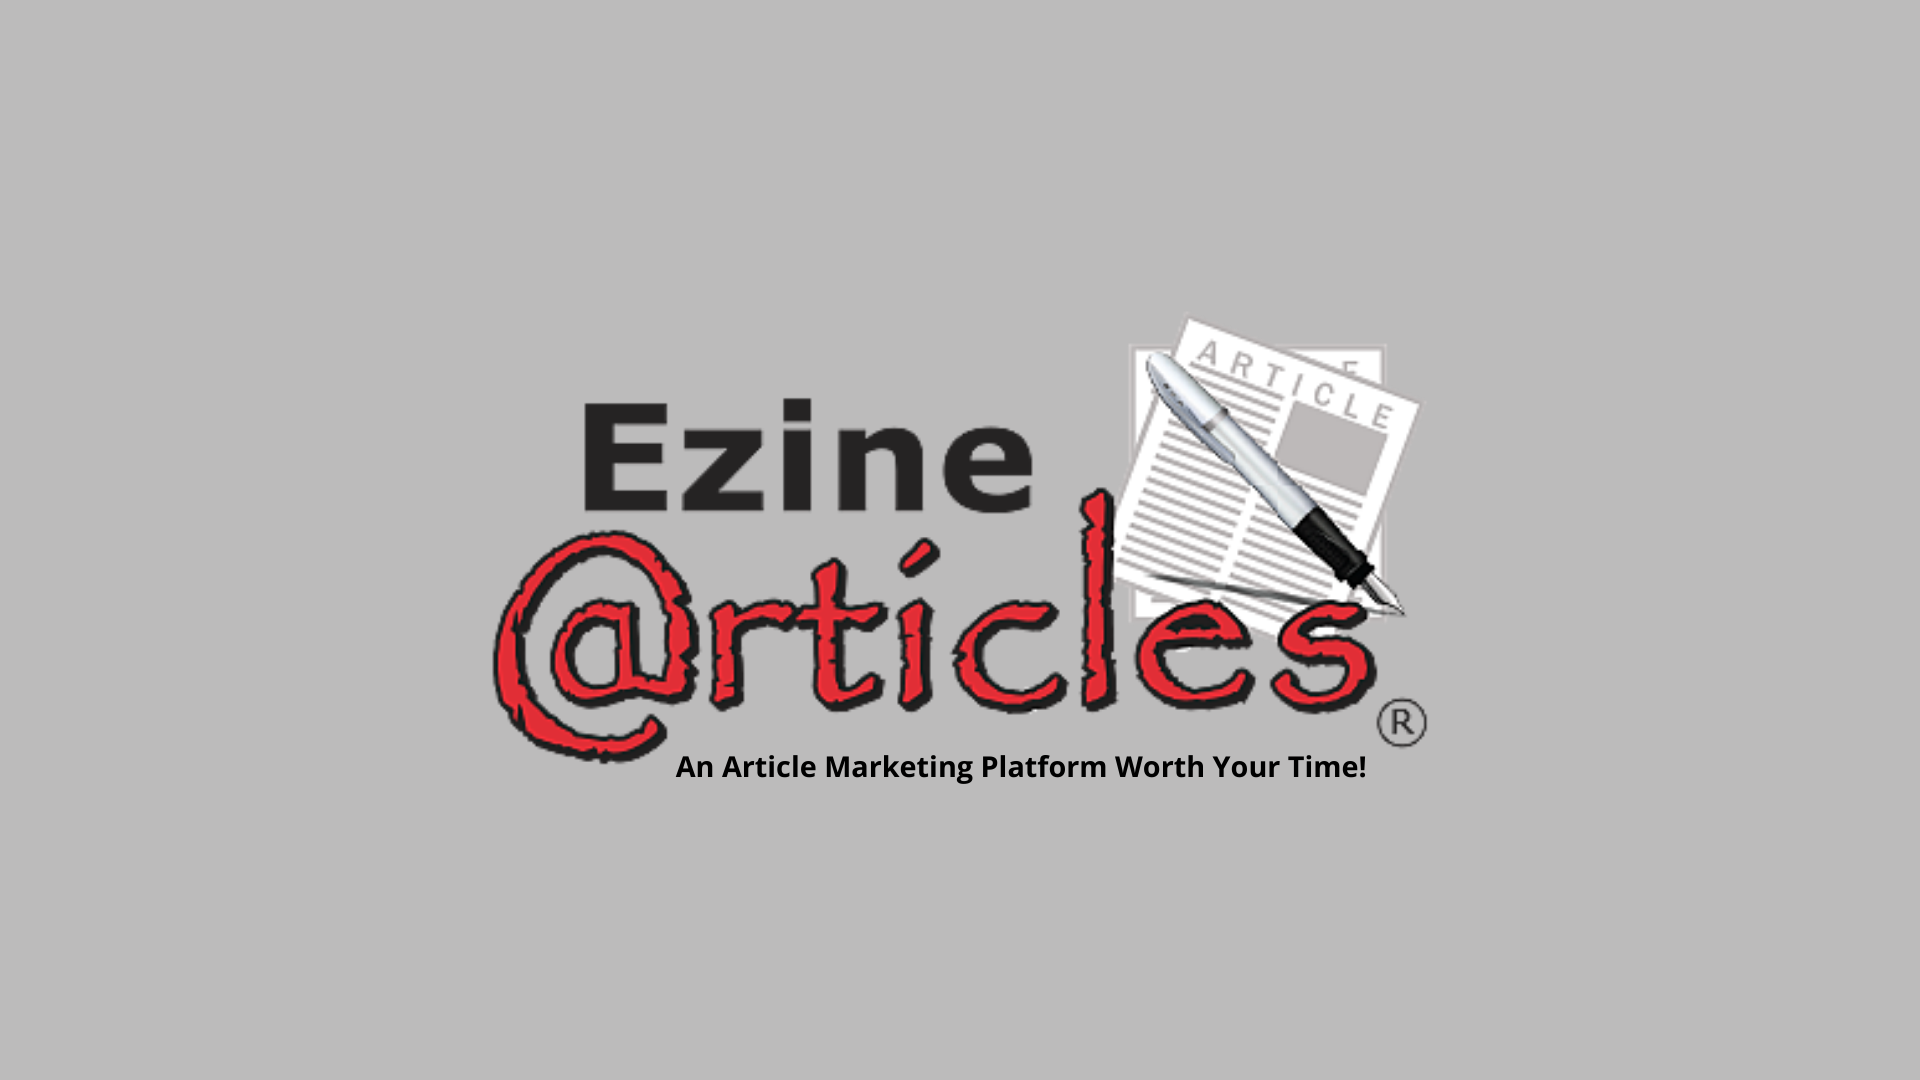 What is EzineArticles.com?